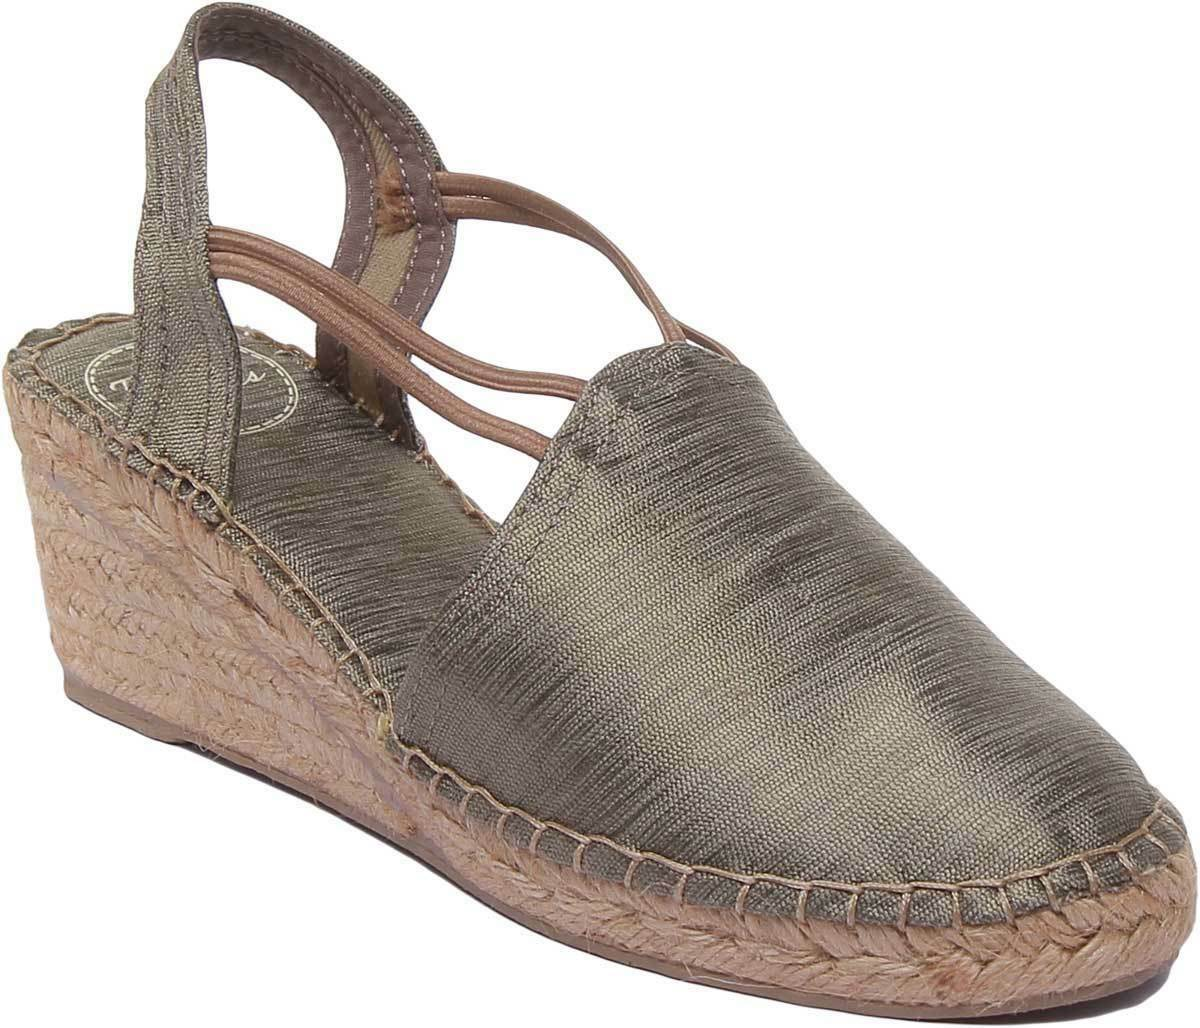 Toni Pons Turia Womens Canvas Ankle Strap Espardrilles In Taupe UK Size 3 - 8